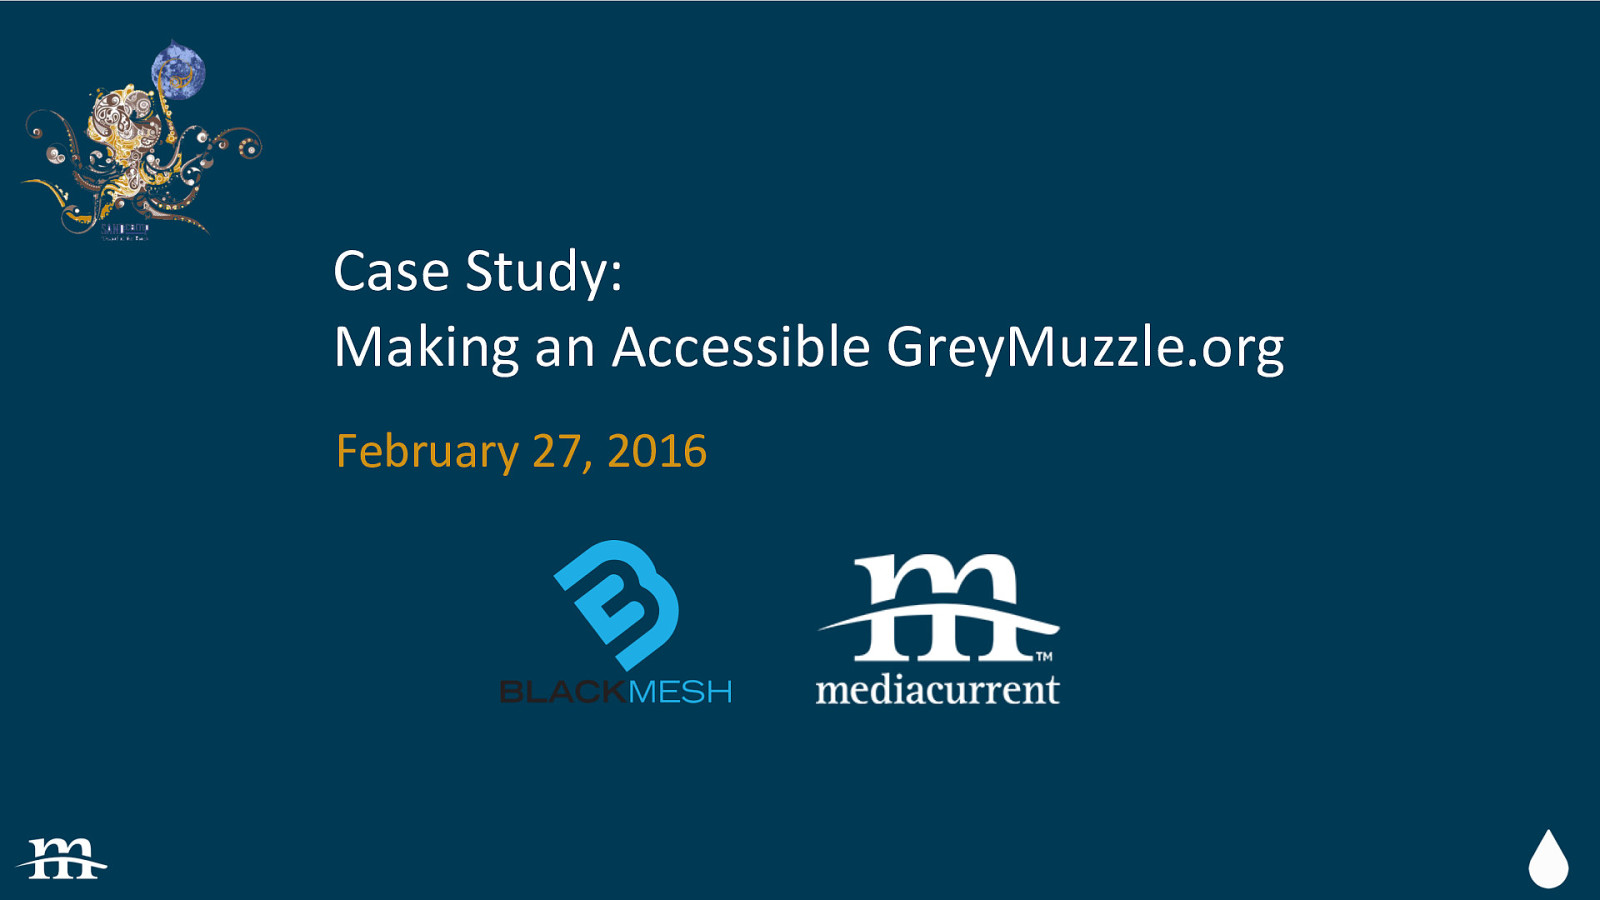 Case Study: Making an Accessible GreyMuzzle.org